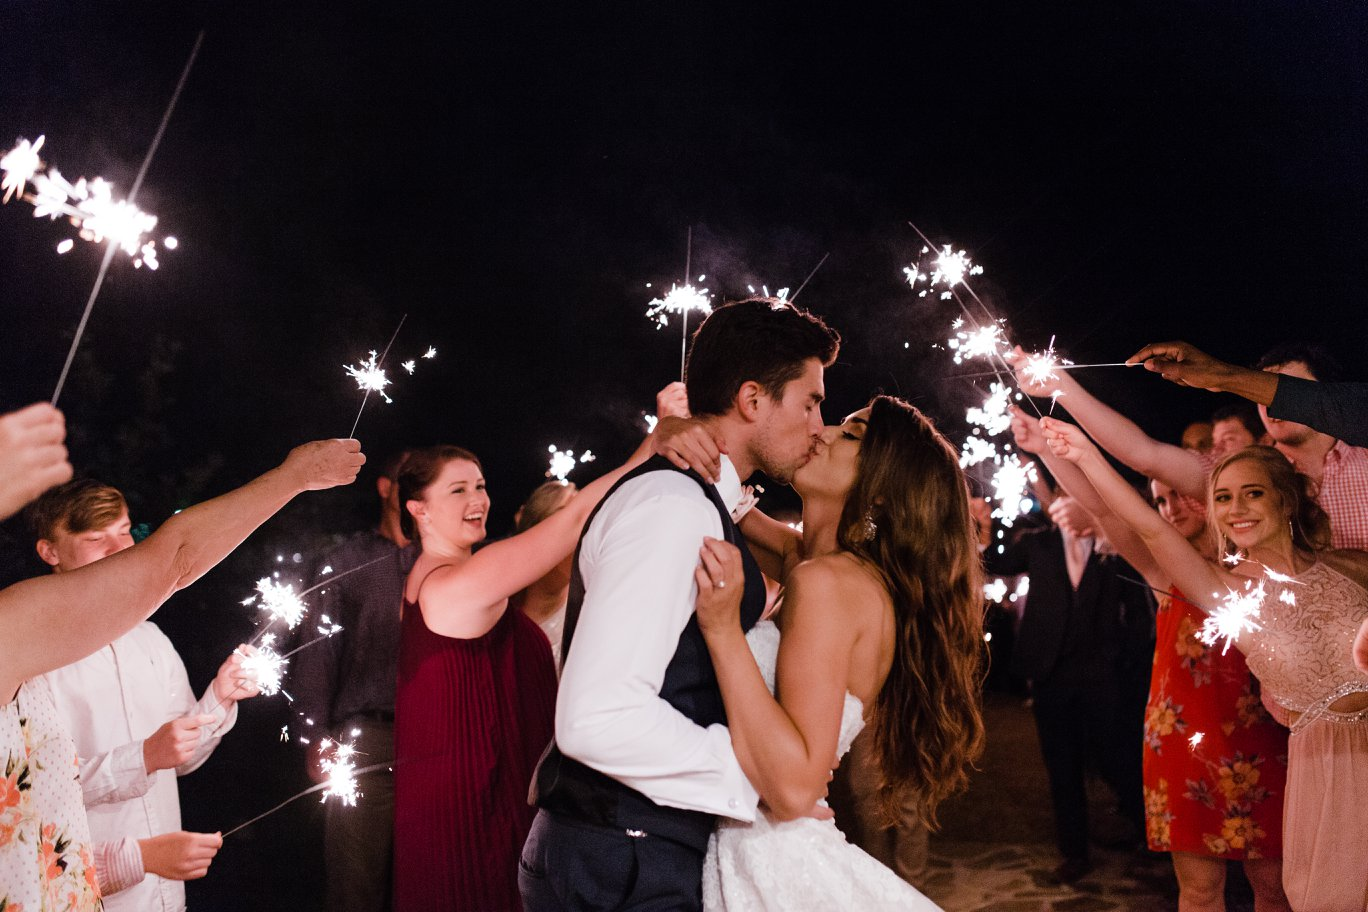 Getaway with sparklers